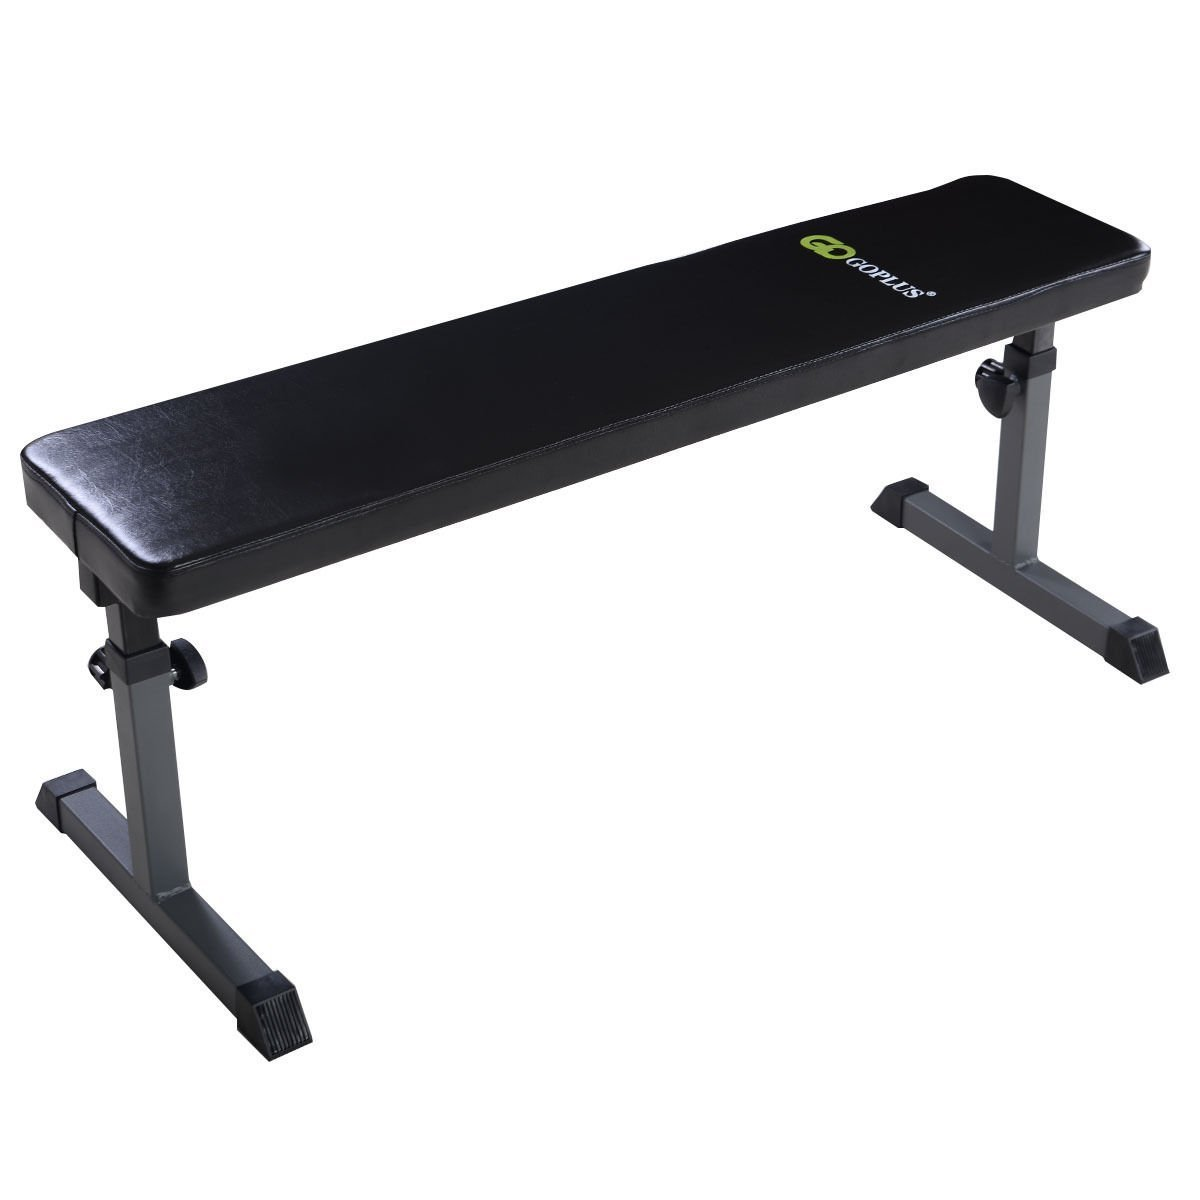 Goplus Flat Weight Bench Height 440-lb Capacity Adjustable Height Heavy Duty Lifting and Ab Workout Padded Bench